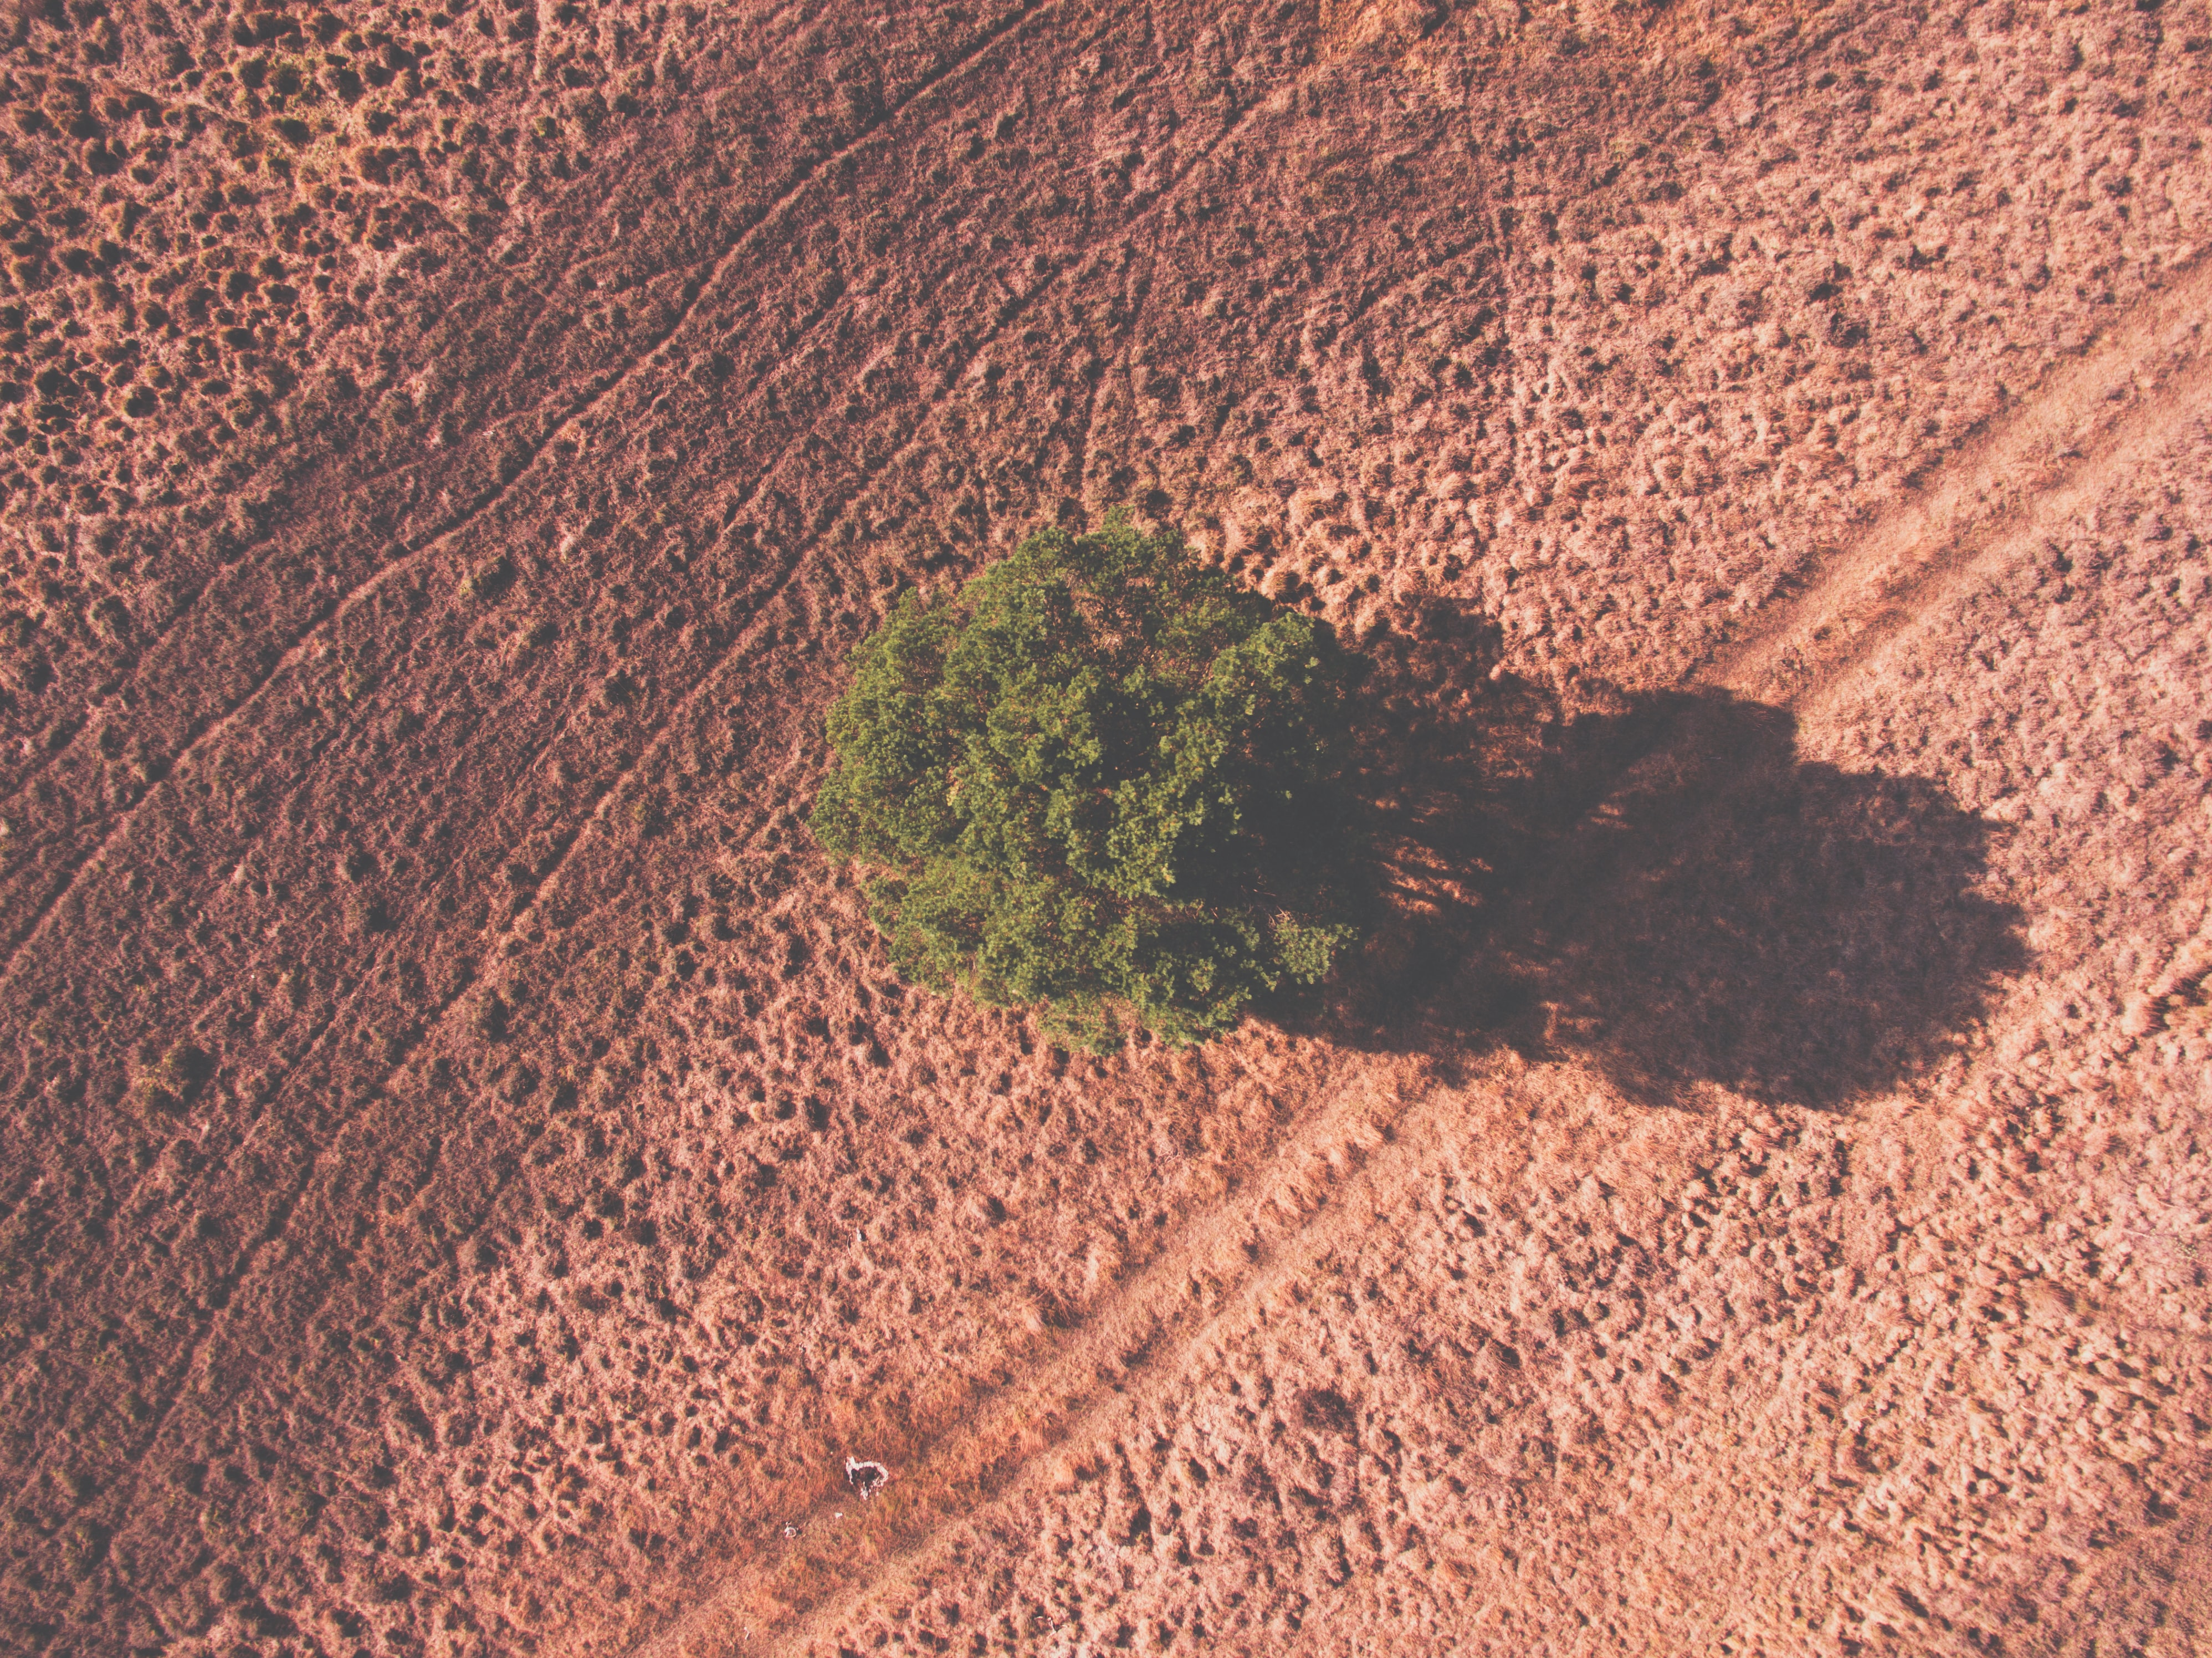 aerial view photography of green leafed tree